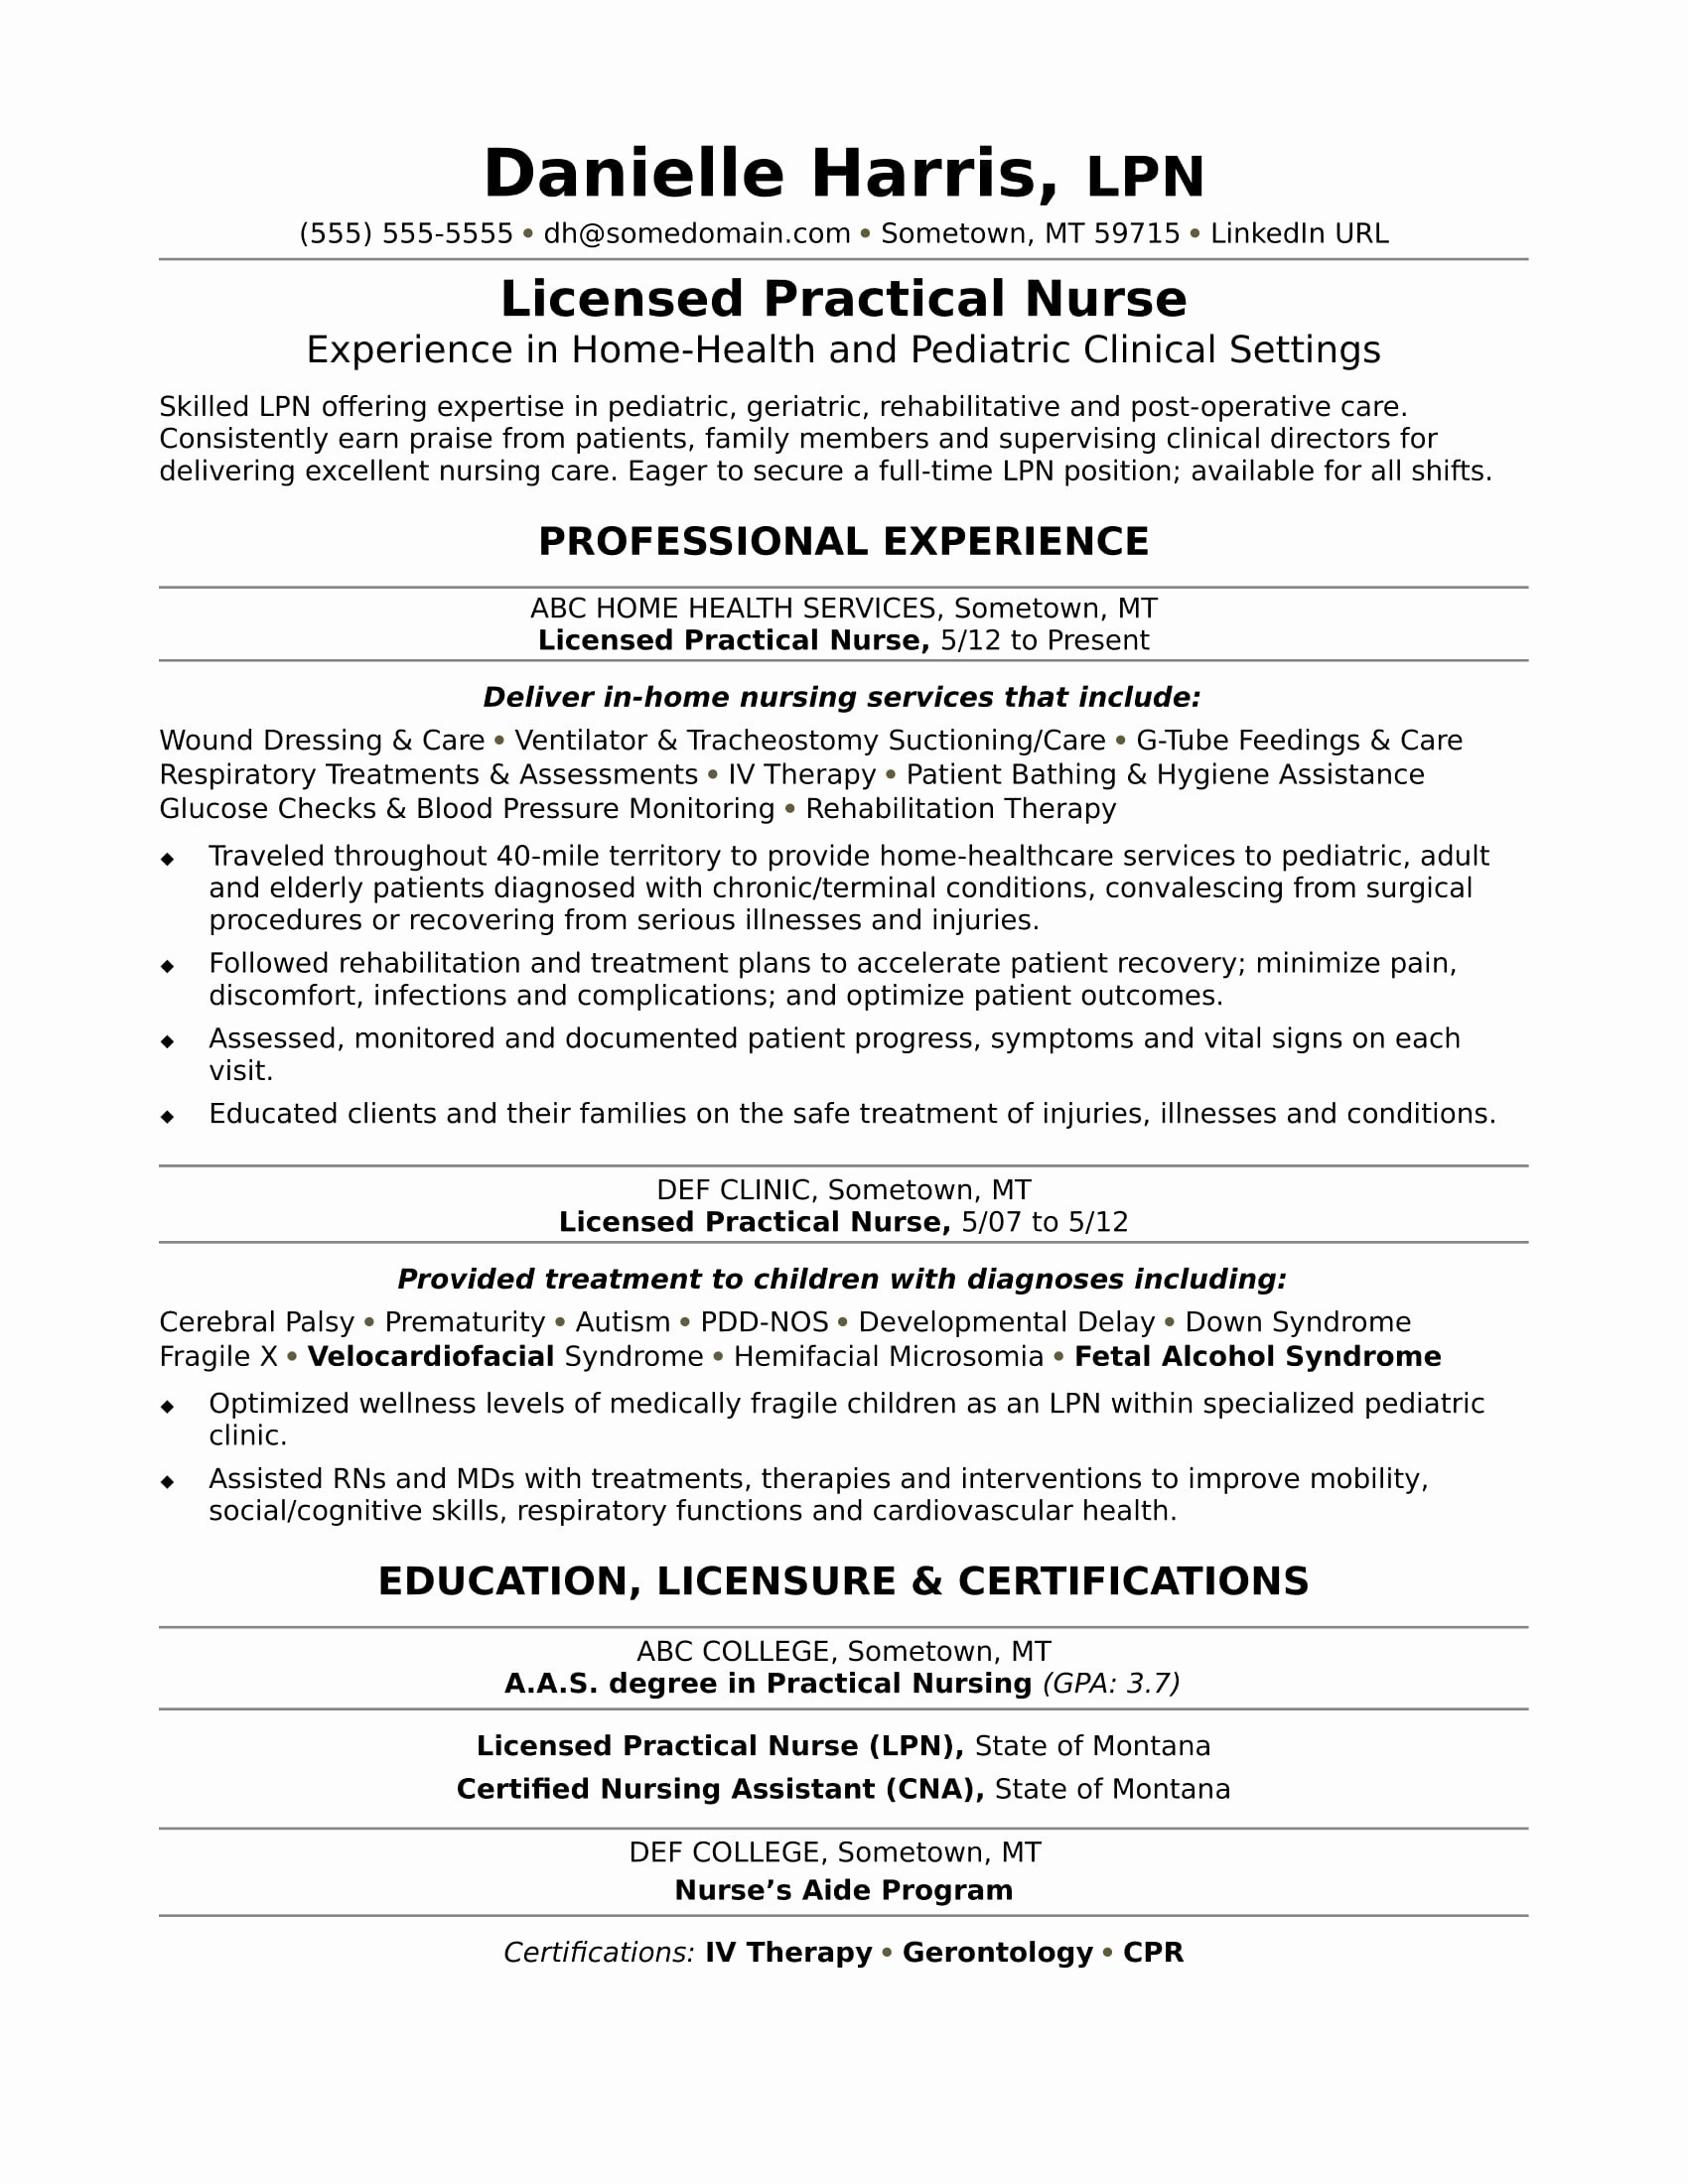 Cv Examples For College Students With No Experience Elegant Cna